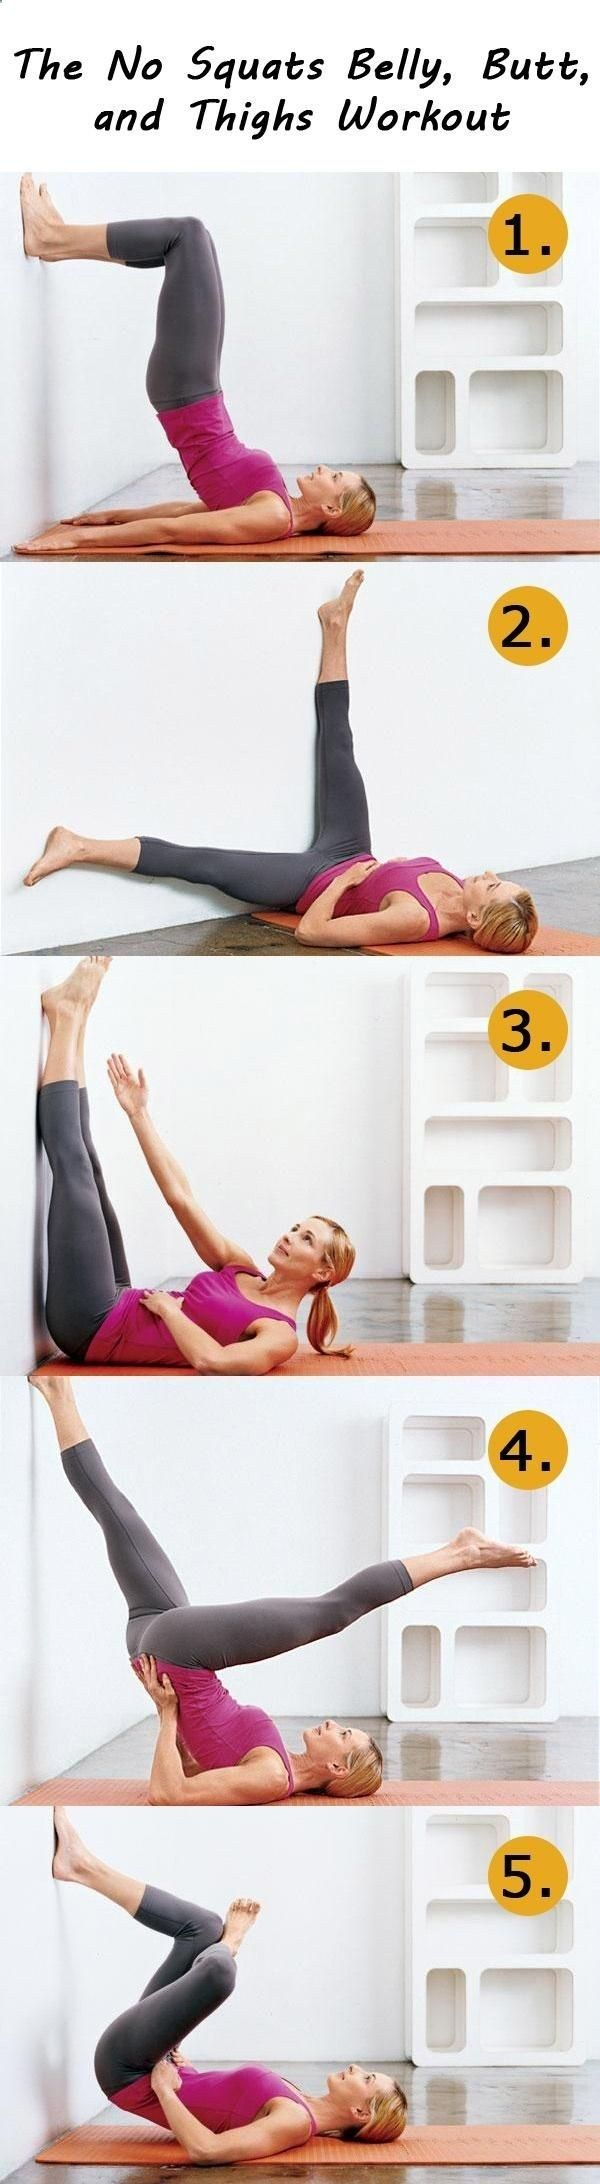 With this fantastic workout routine you will be able to flatten your belly, slim your thighs, and firm your butt.